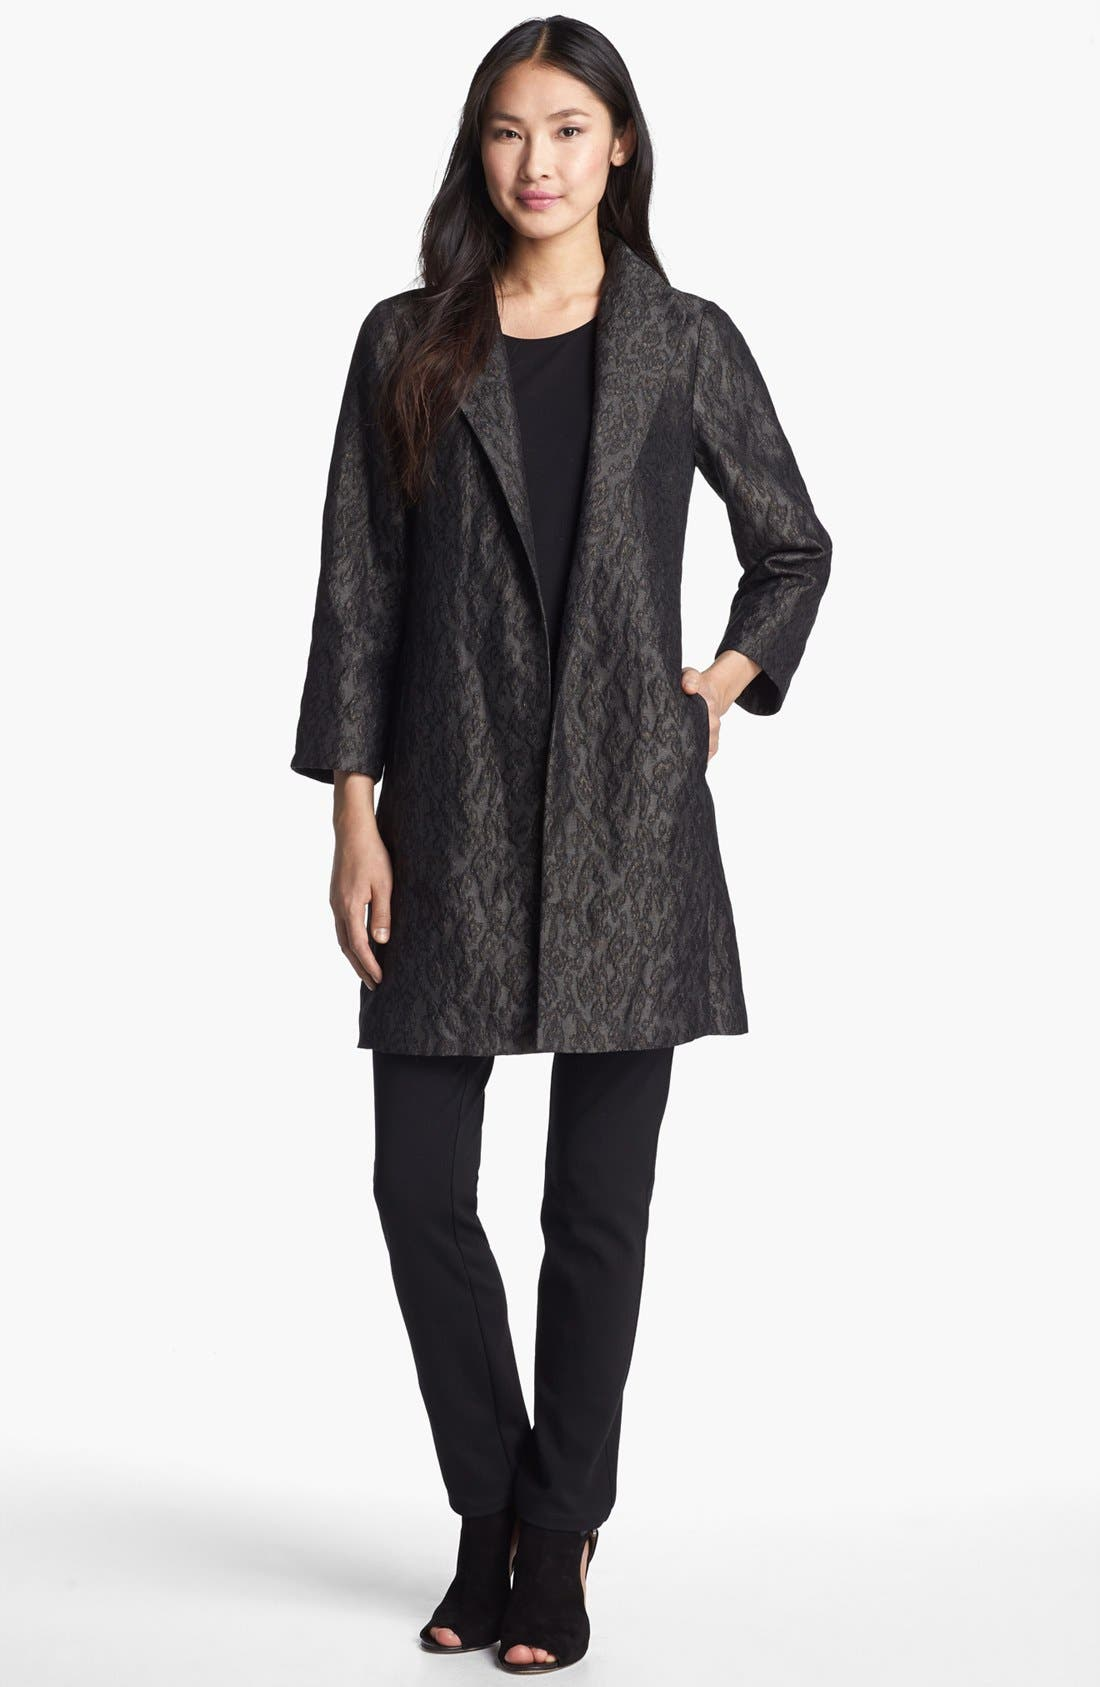 Alternate Image 1 Selected - Eileen Fisher 'Ikat Embers' Jacquard Jacket